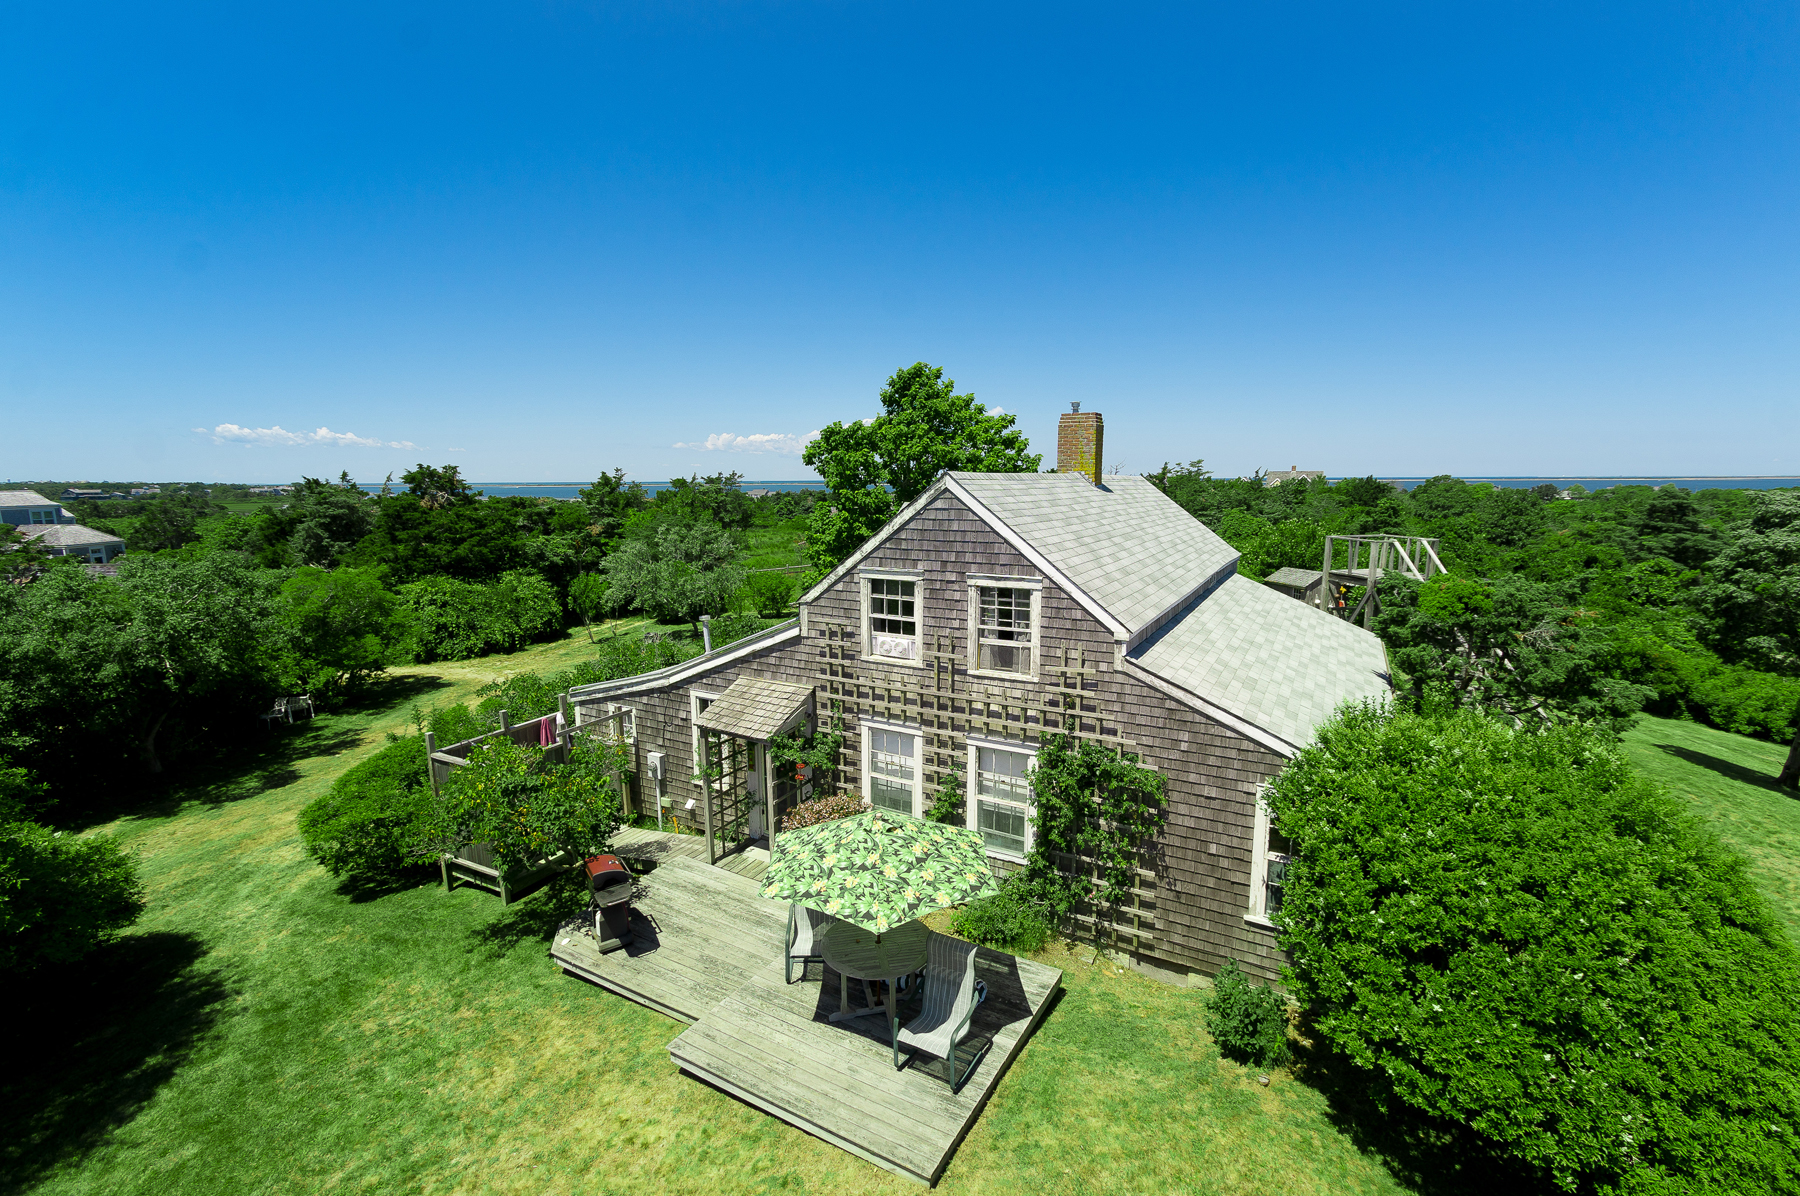 Single Family Home for Sale at Own a Piece of Nantucket History 15 Bassett Road Nantucket, Massachusetts, 02554 United States